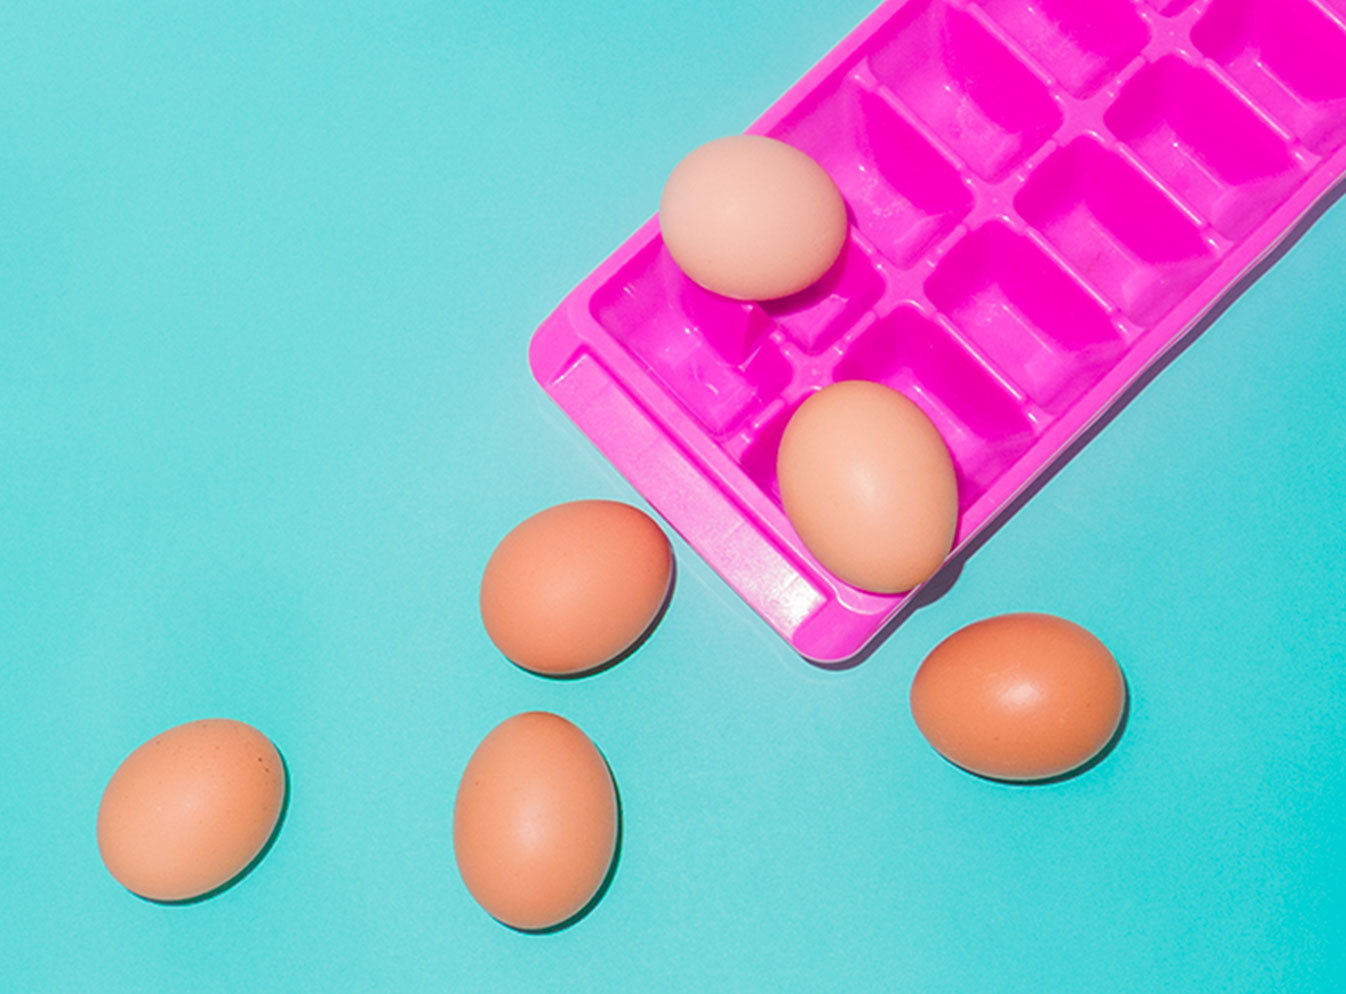 Eggs on an ice cube tray